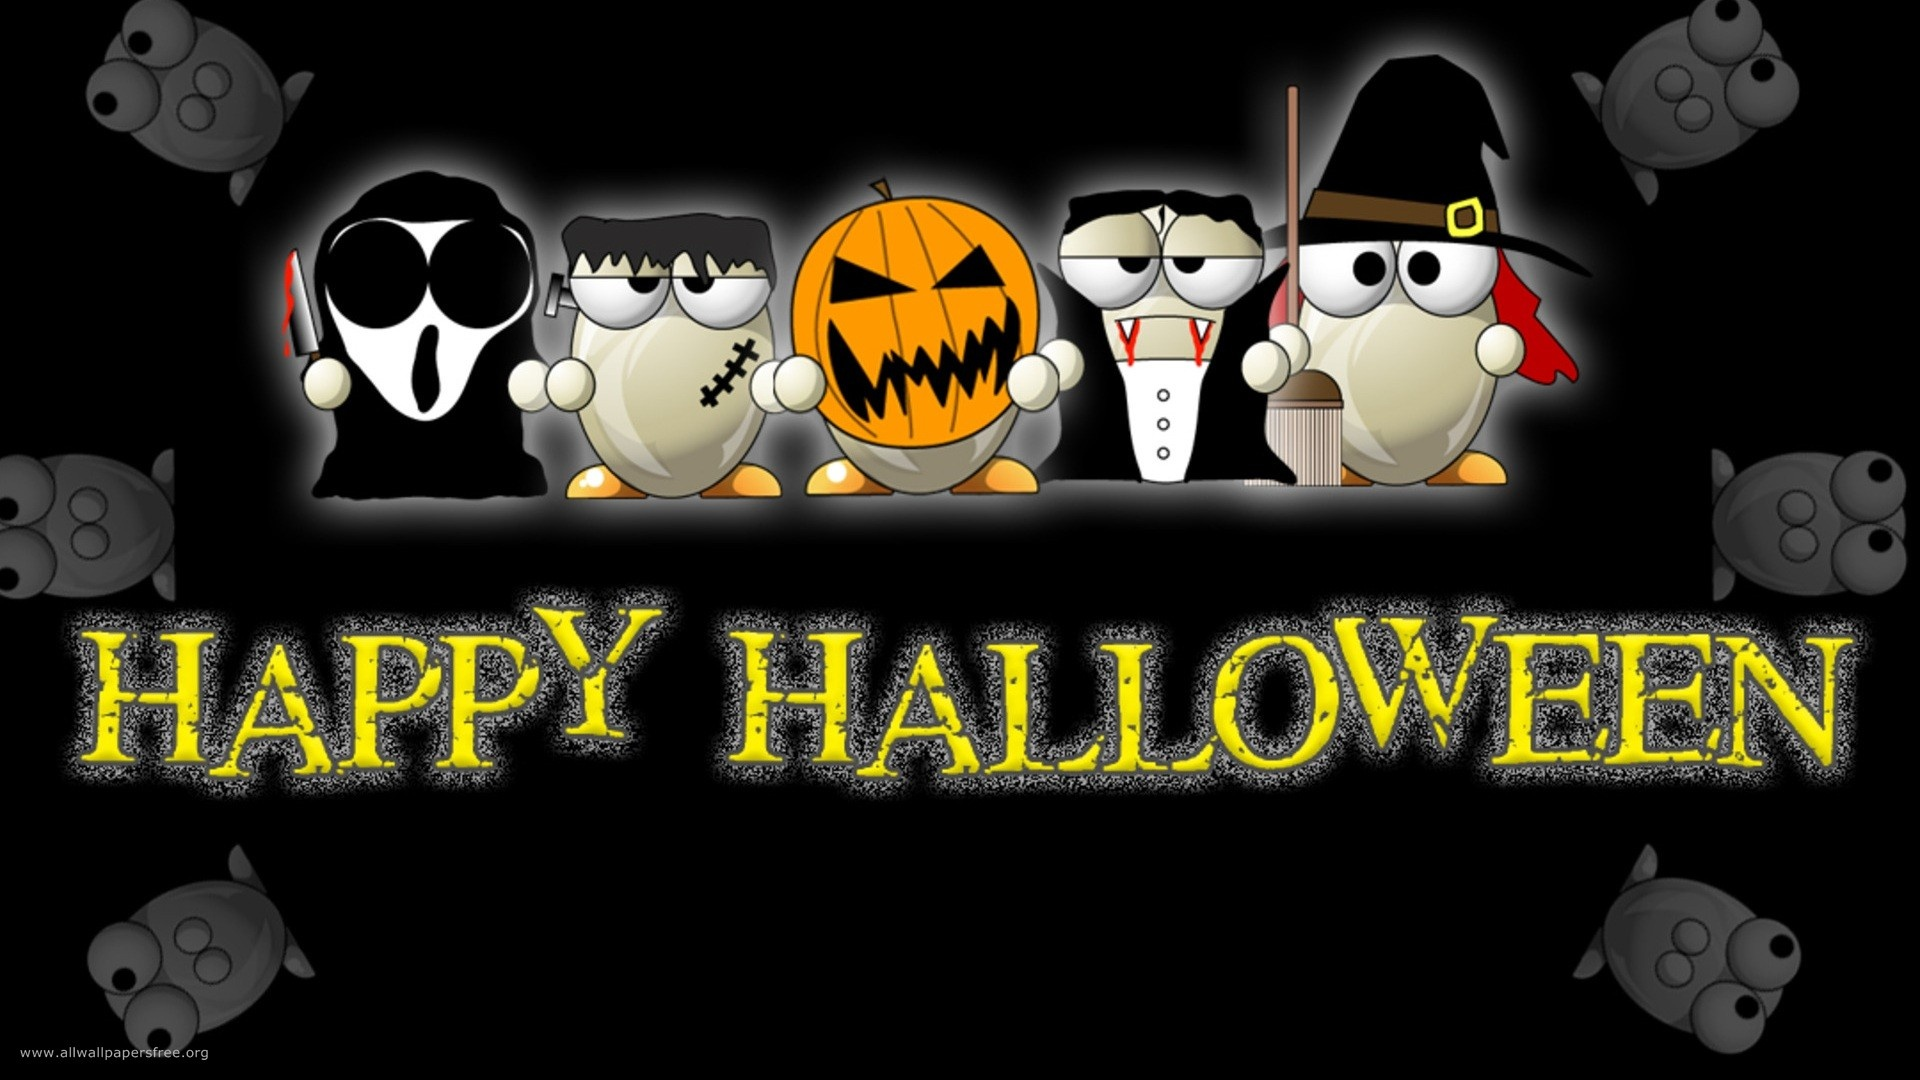 download happy halloween picture hd wallpaper wallpapers55com 1920x1080